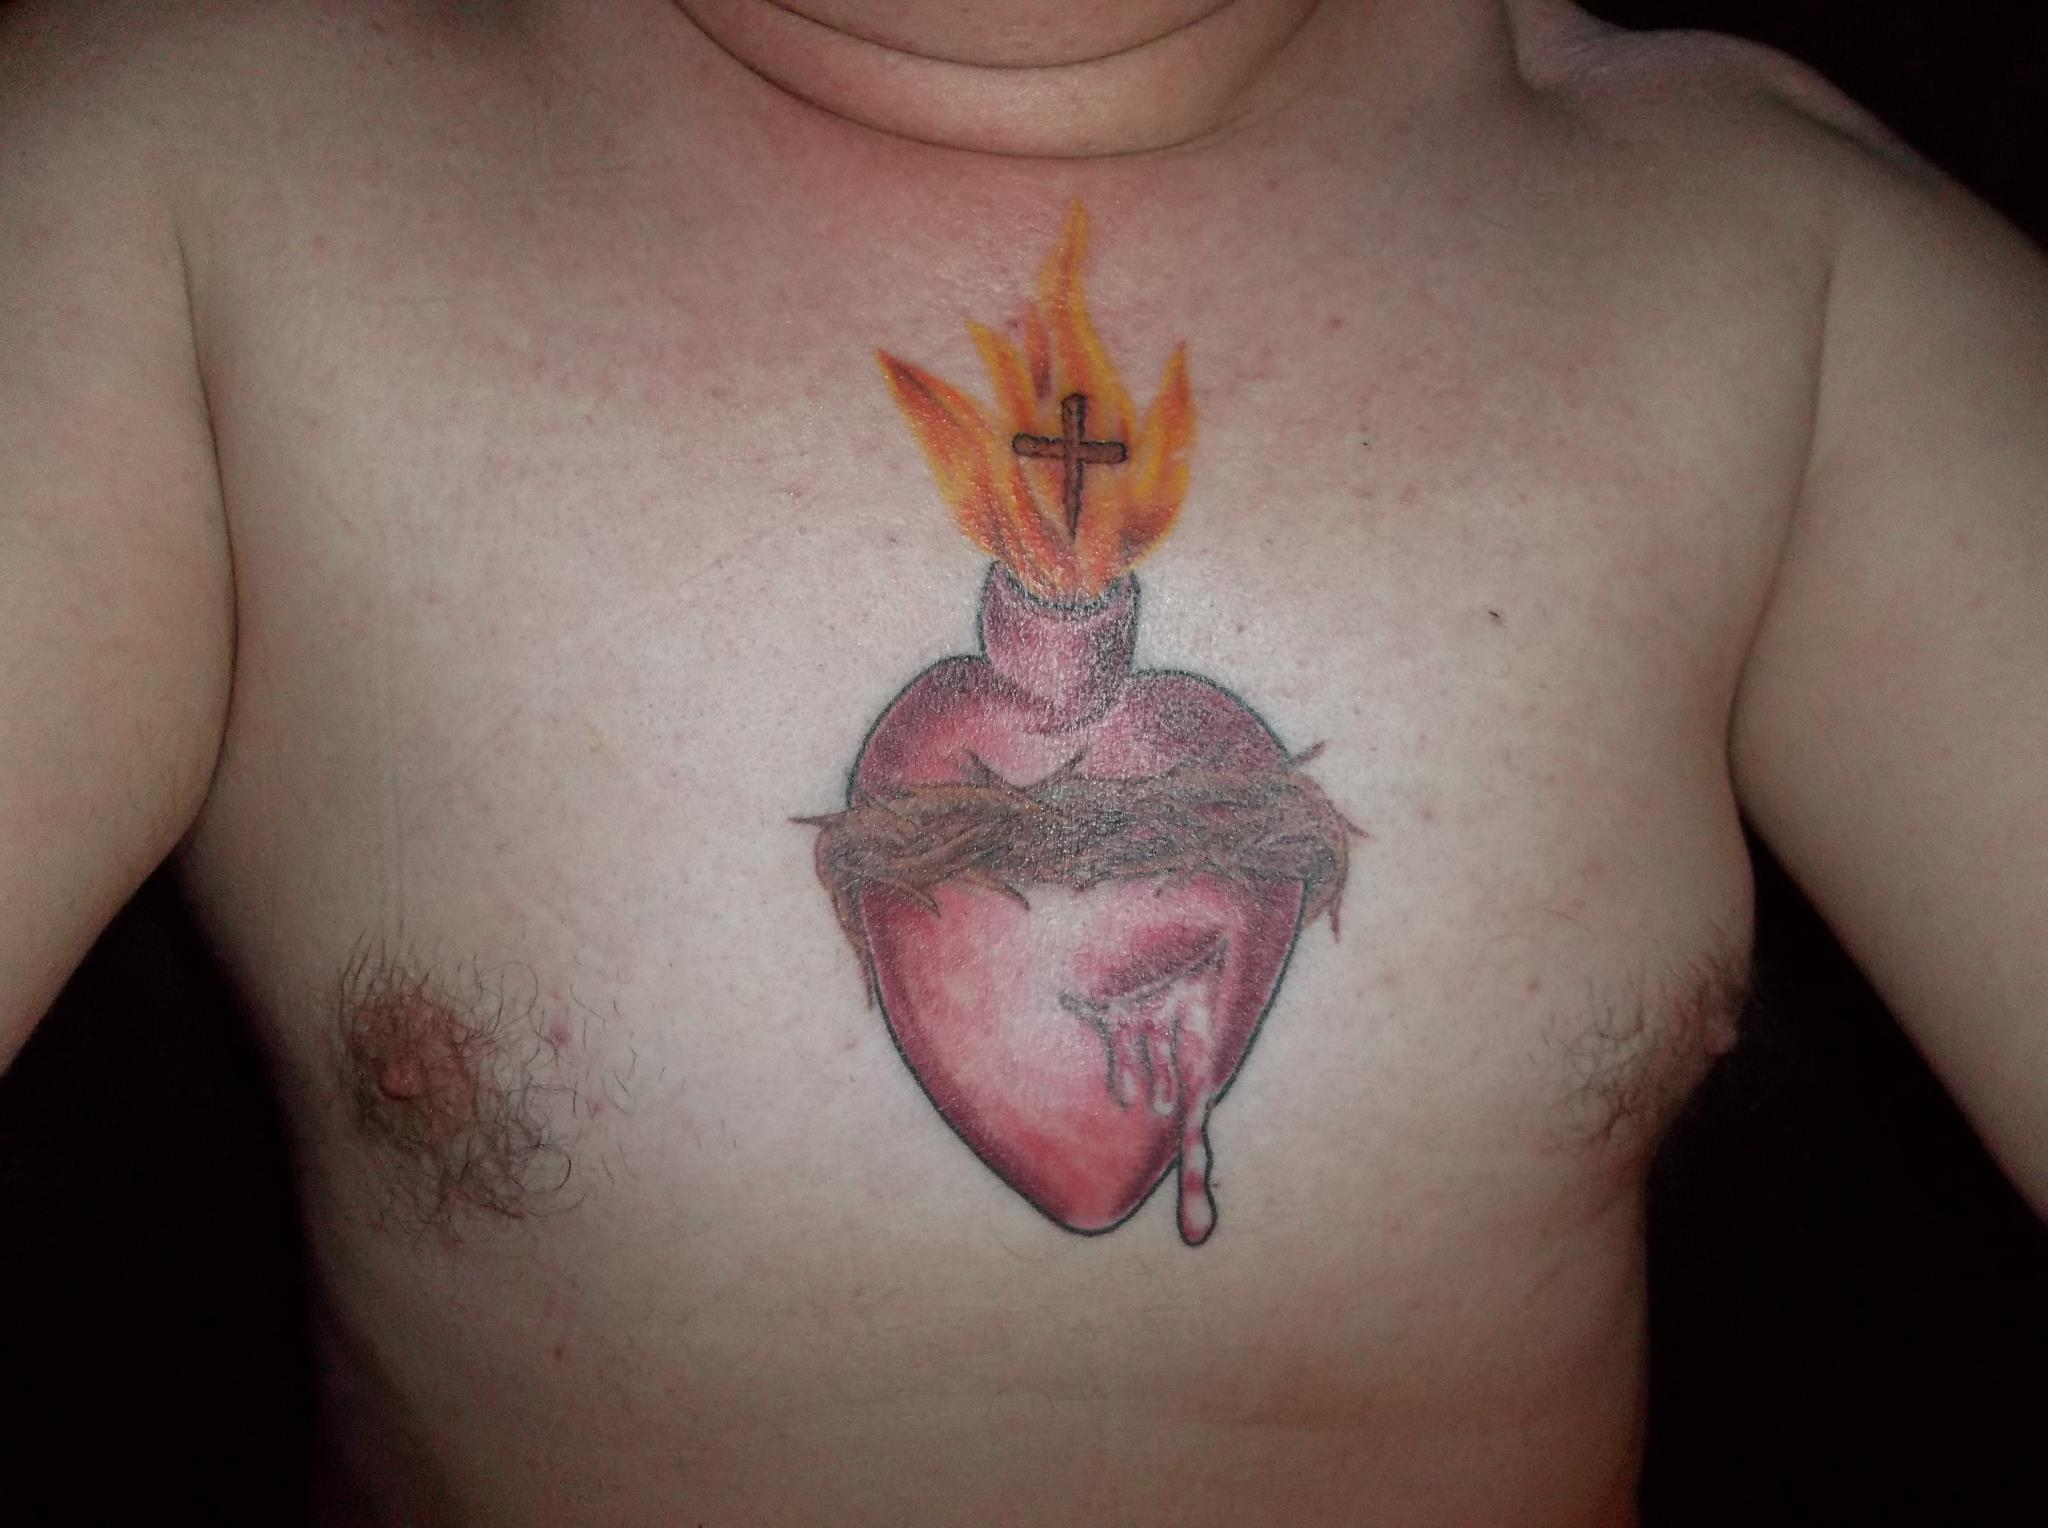 Sacret Heart Tattoo